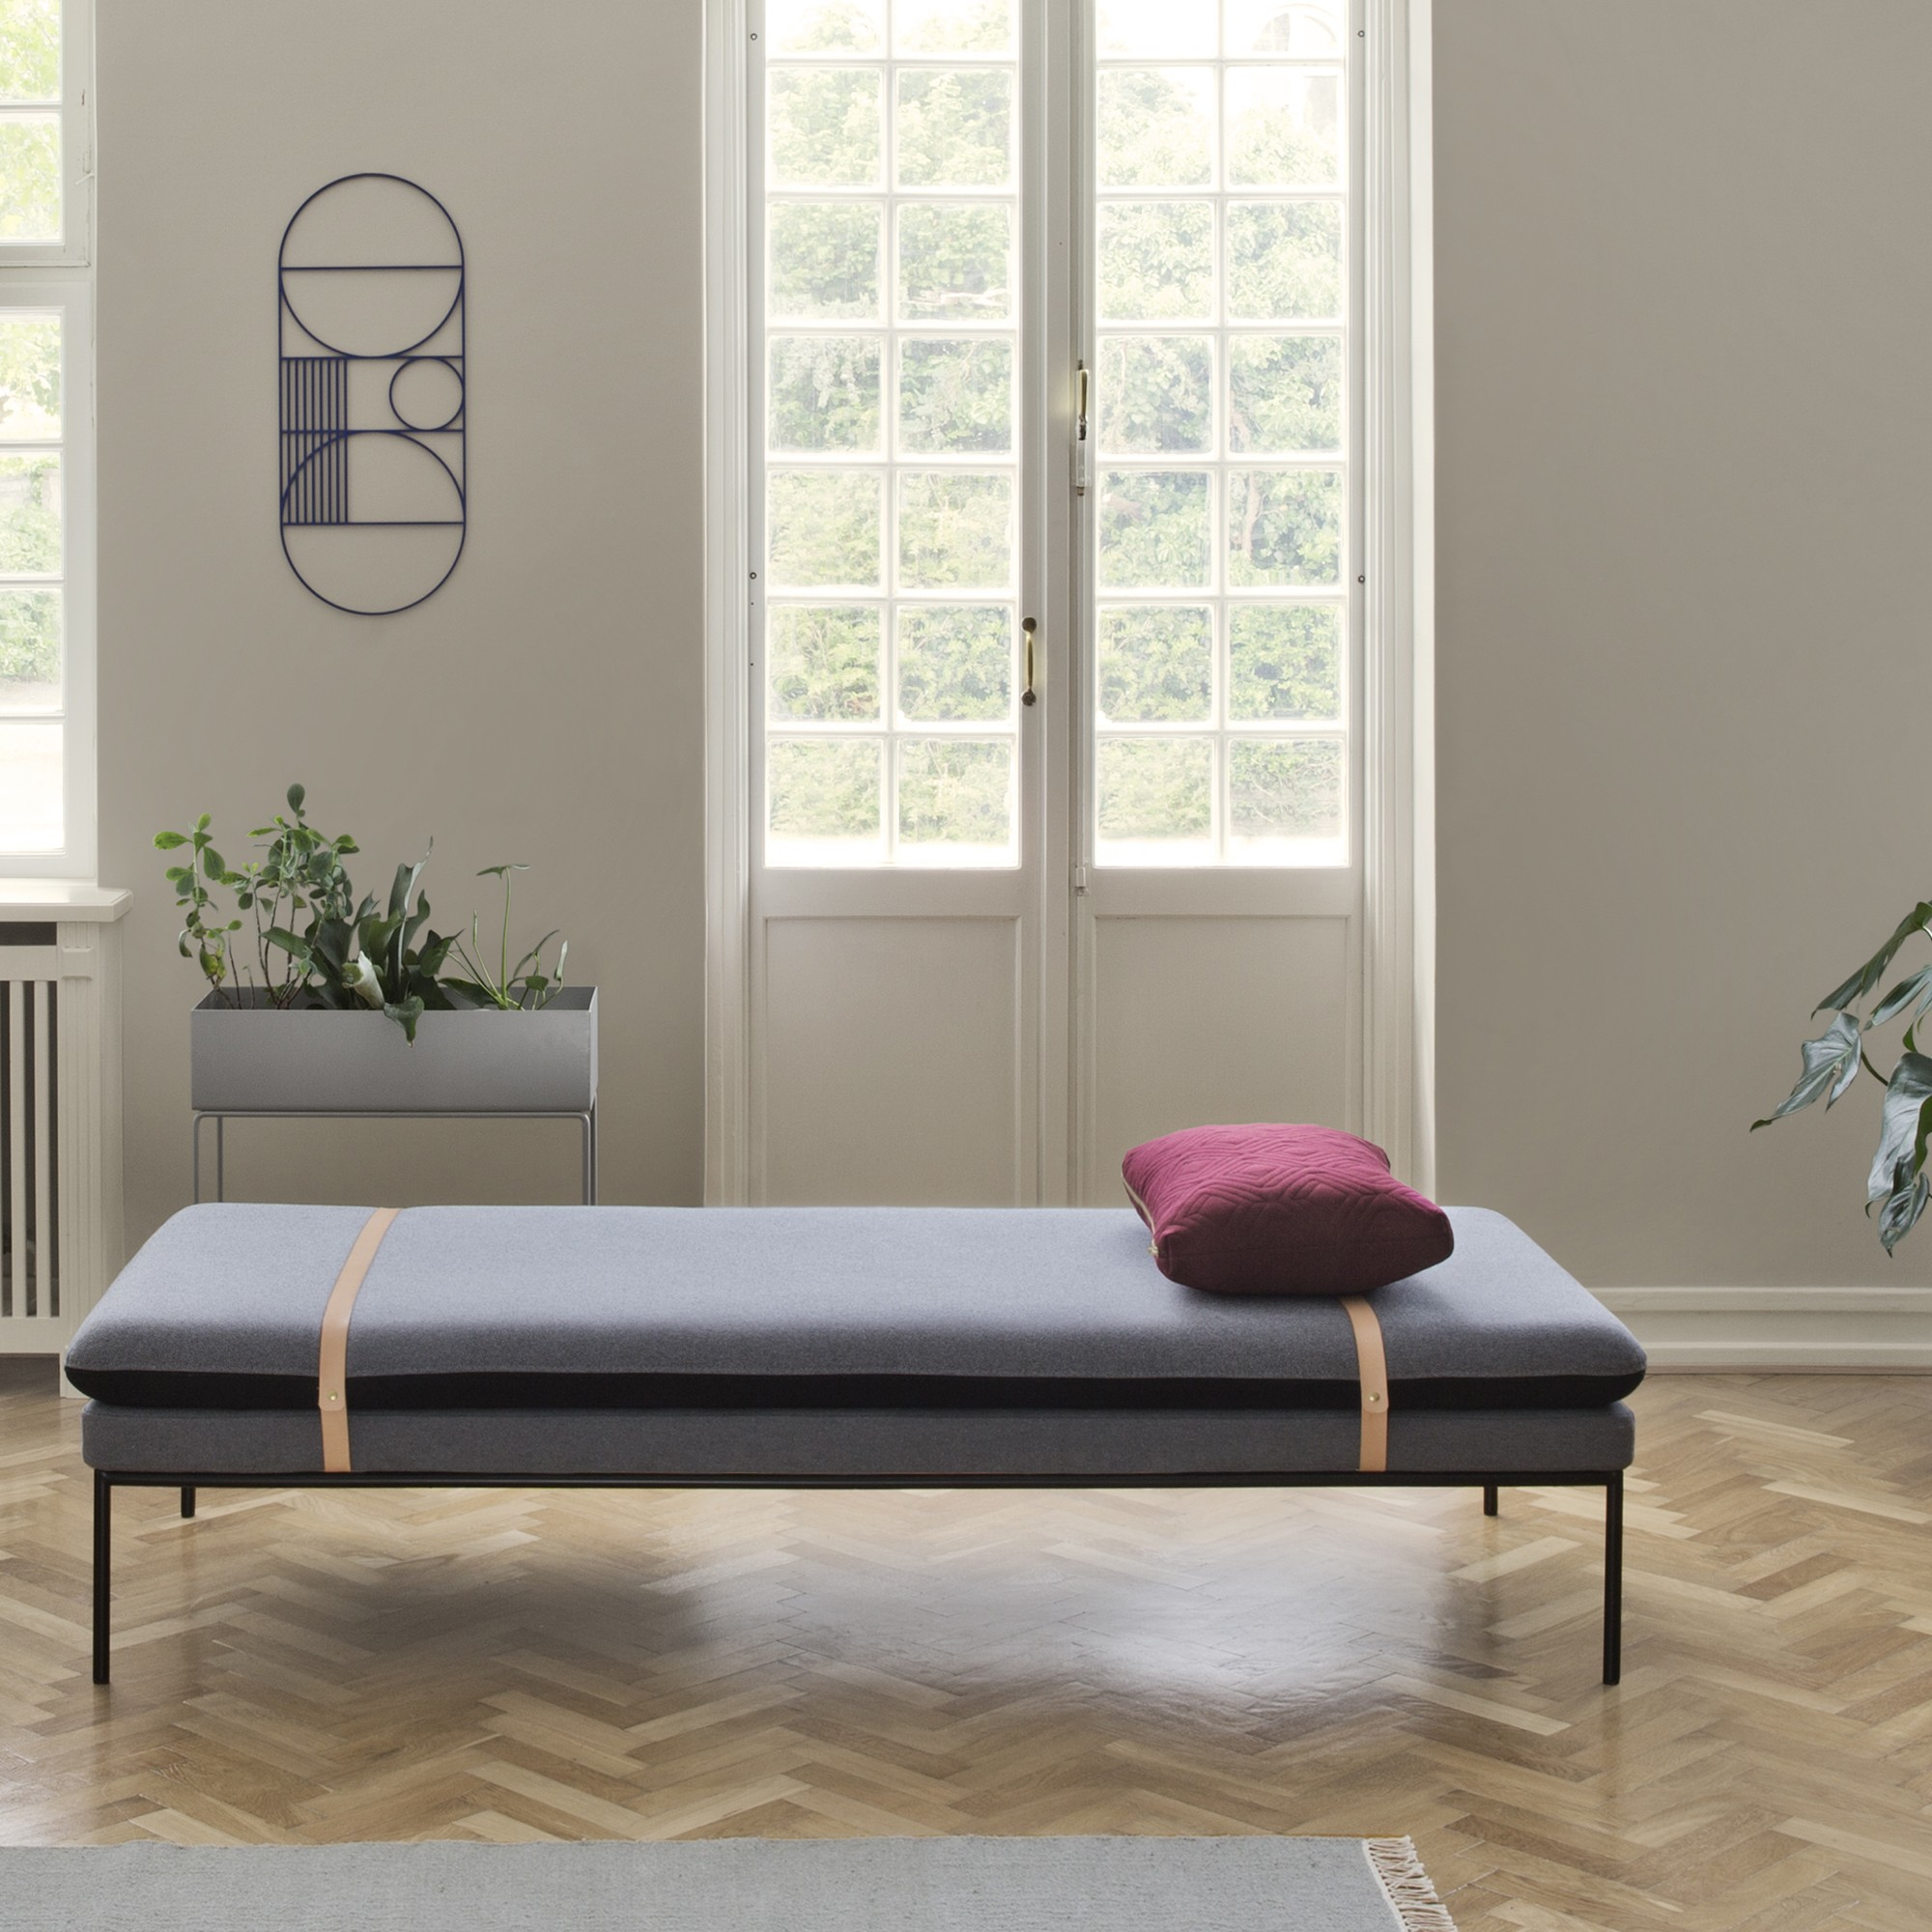 turn-daybed